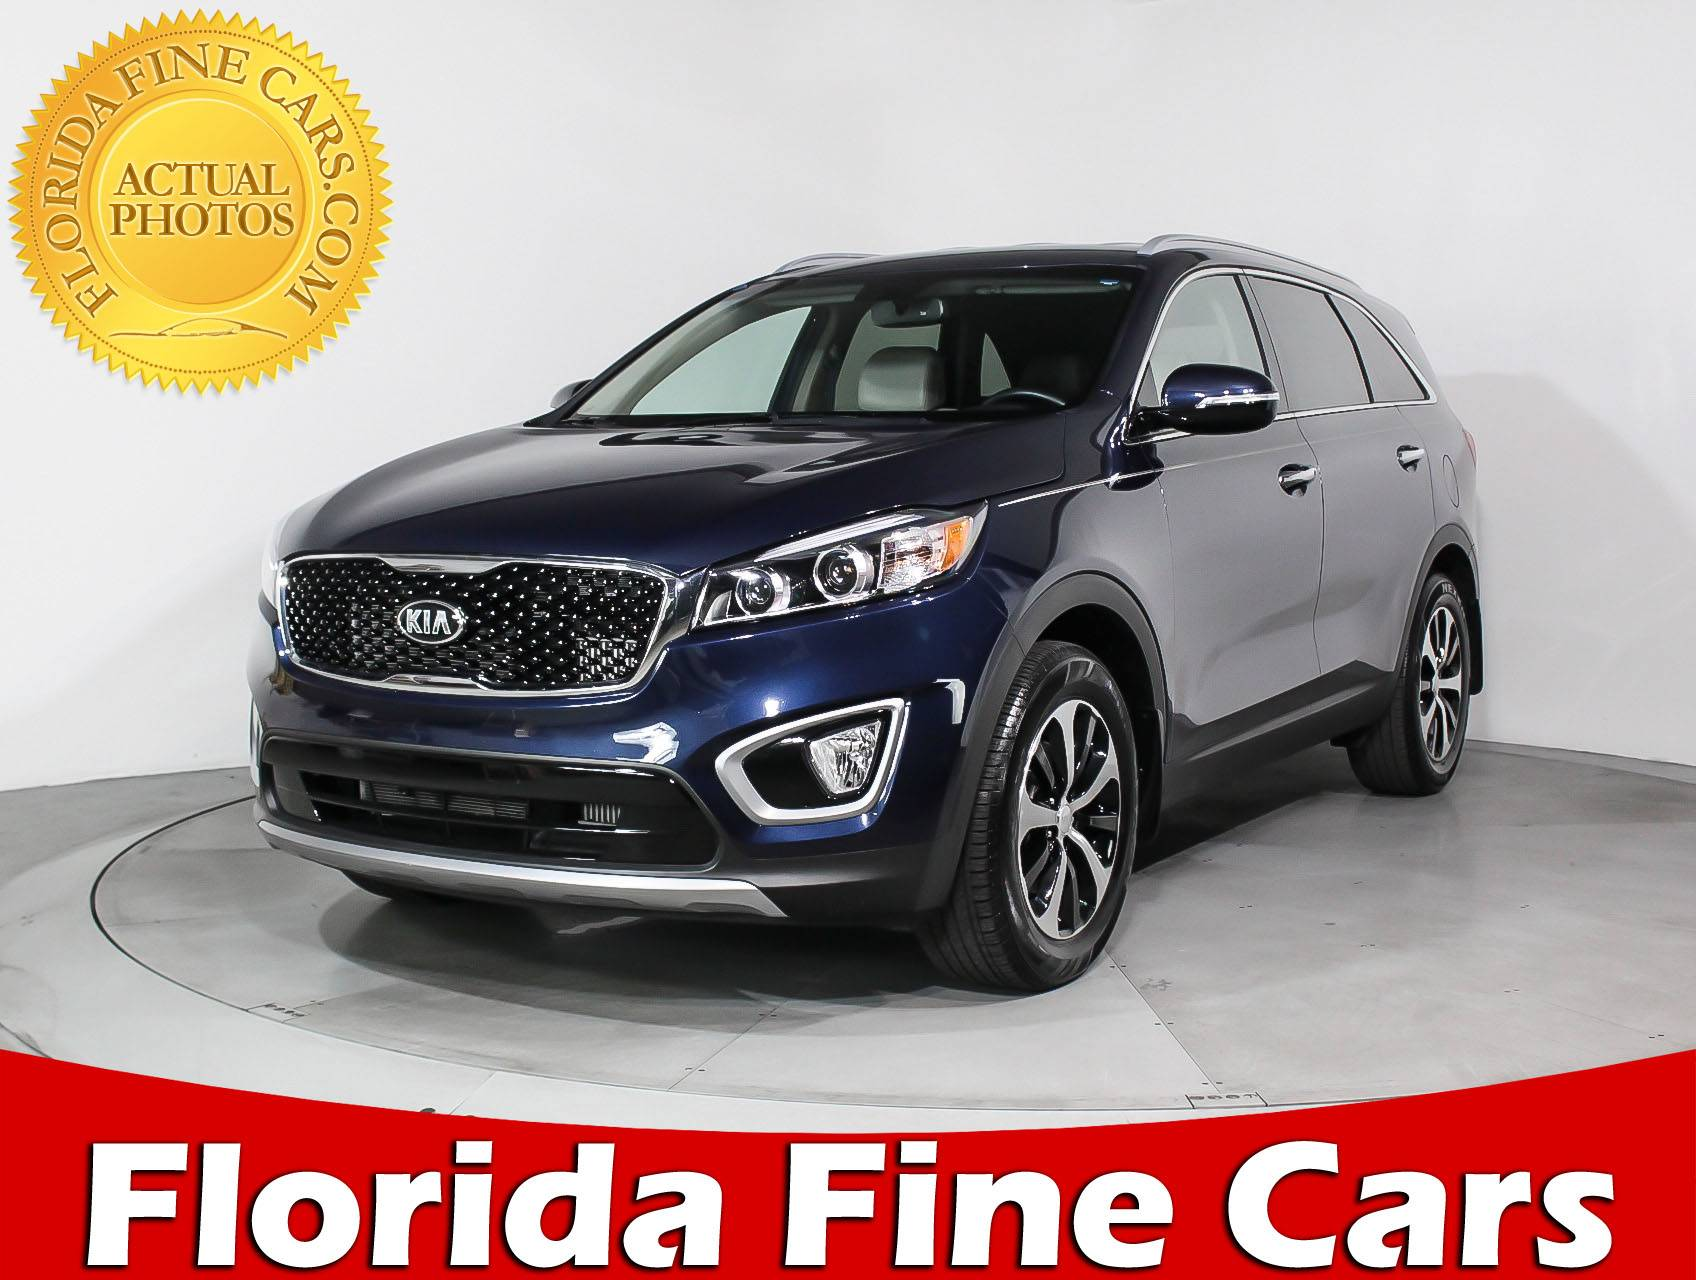 used on wessex plate sportage suv youtube feeder watch garages bristol road crdi in kia